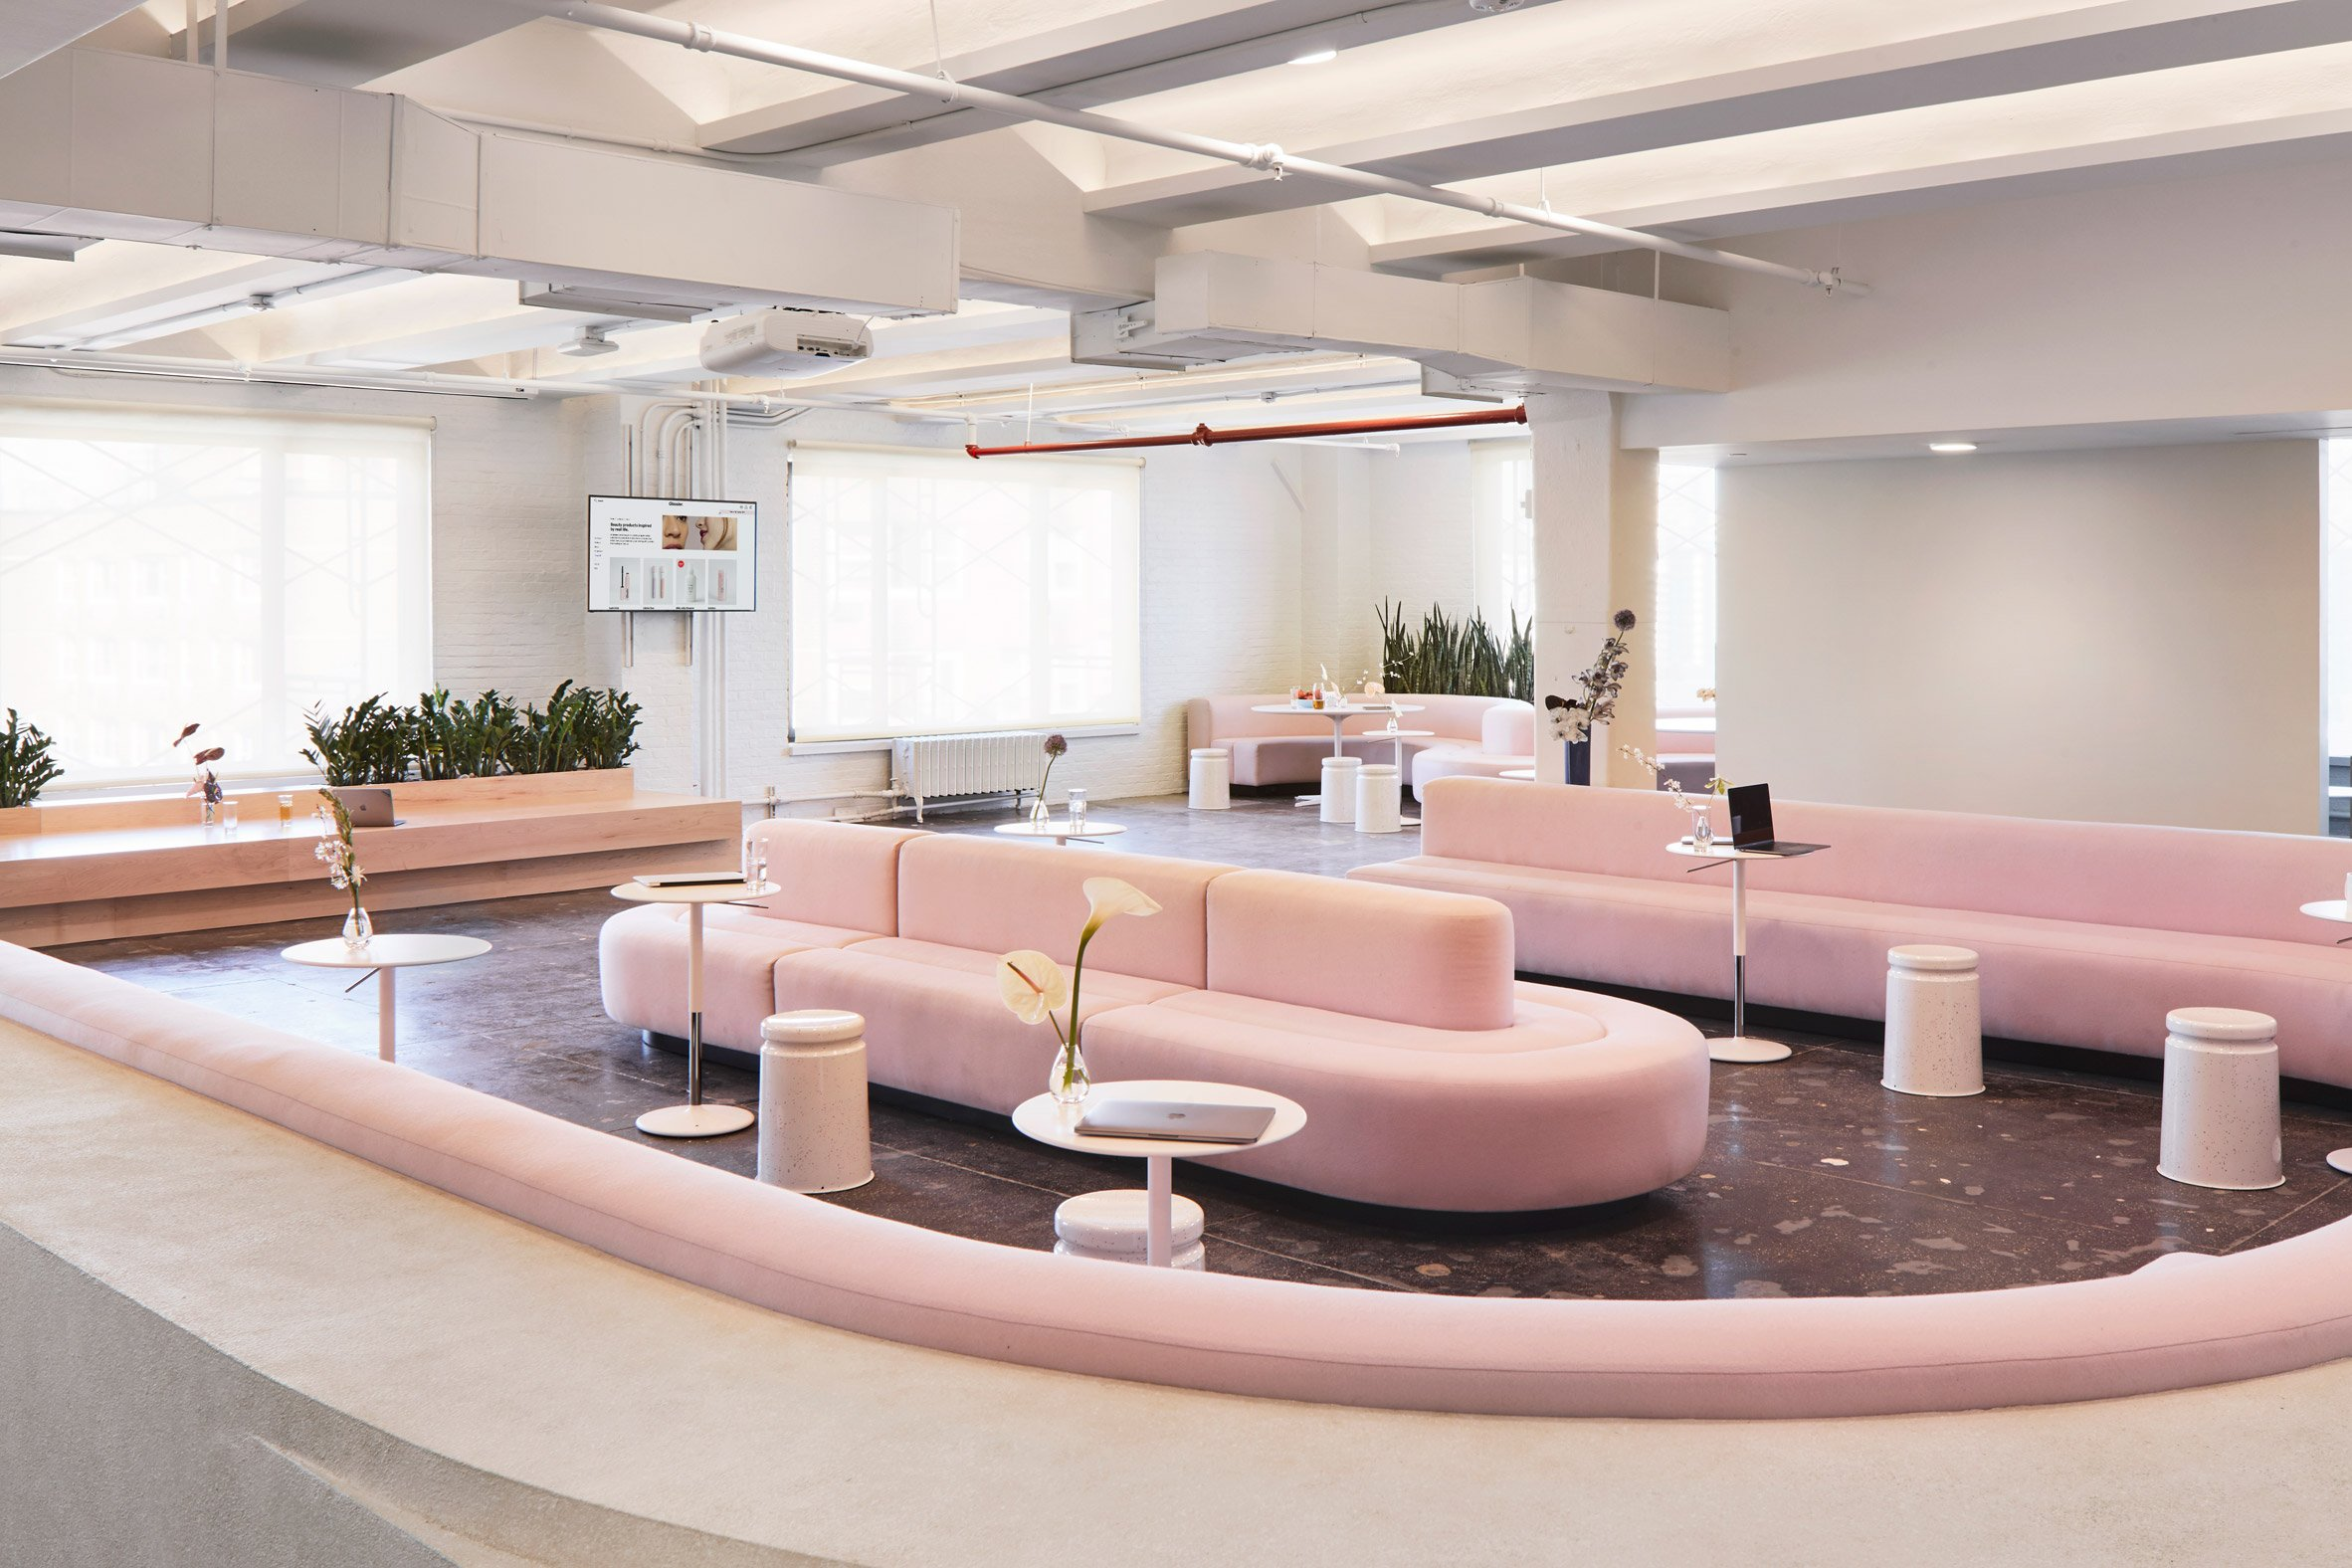 Rafael de cárdenas plays with pink at glossier hq in new york